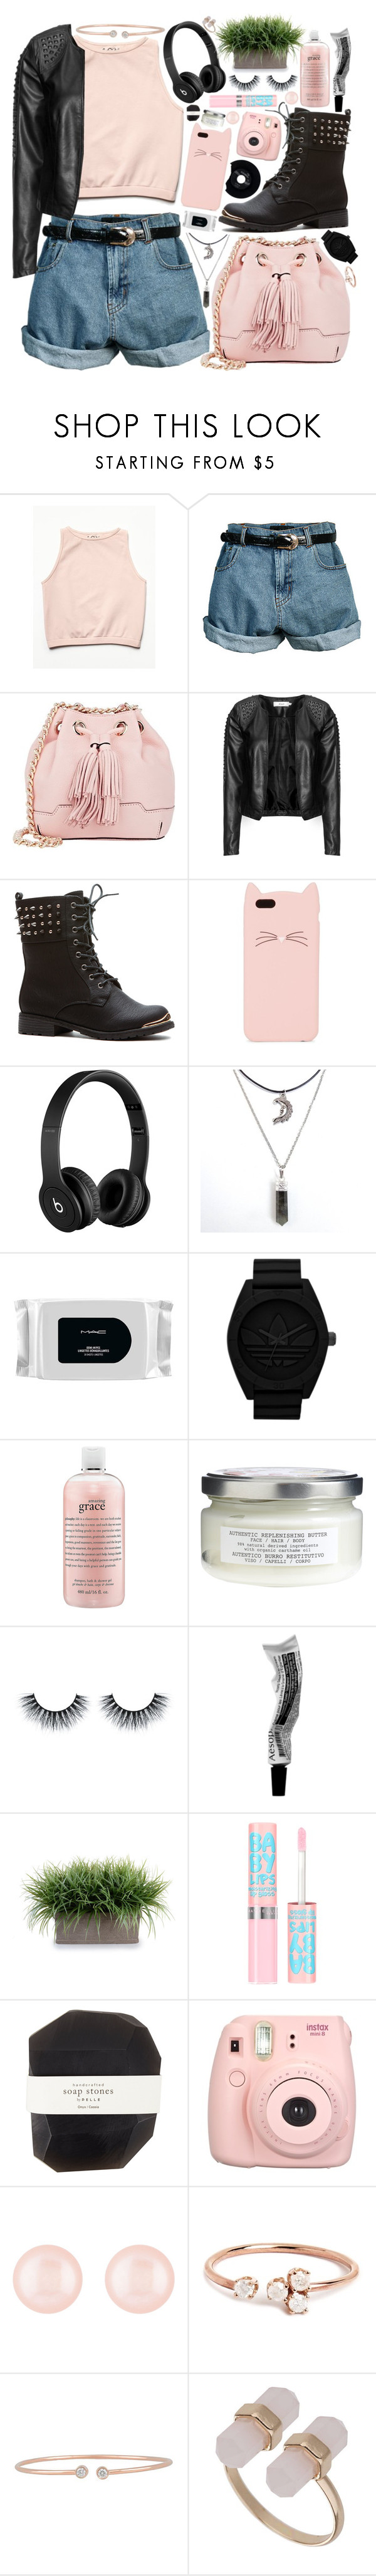 """""""I wish you were here, but I wish you were gone"""" by skia-kai ❤ liked on Polyvore featuring Free People, Retrò, Rebecca Minkoff, Zizzi, Kate Spade, Beats by Dr. Dre, CHESTERFIELD, MAC Cosmetics, adidas Originals and philosophy"""